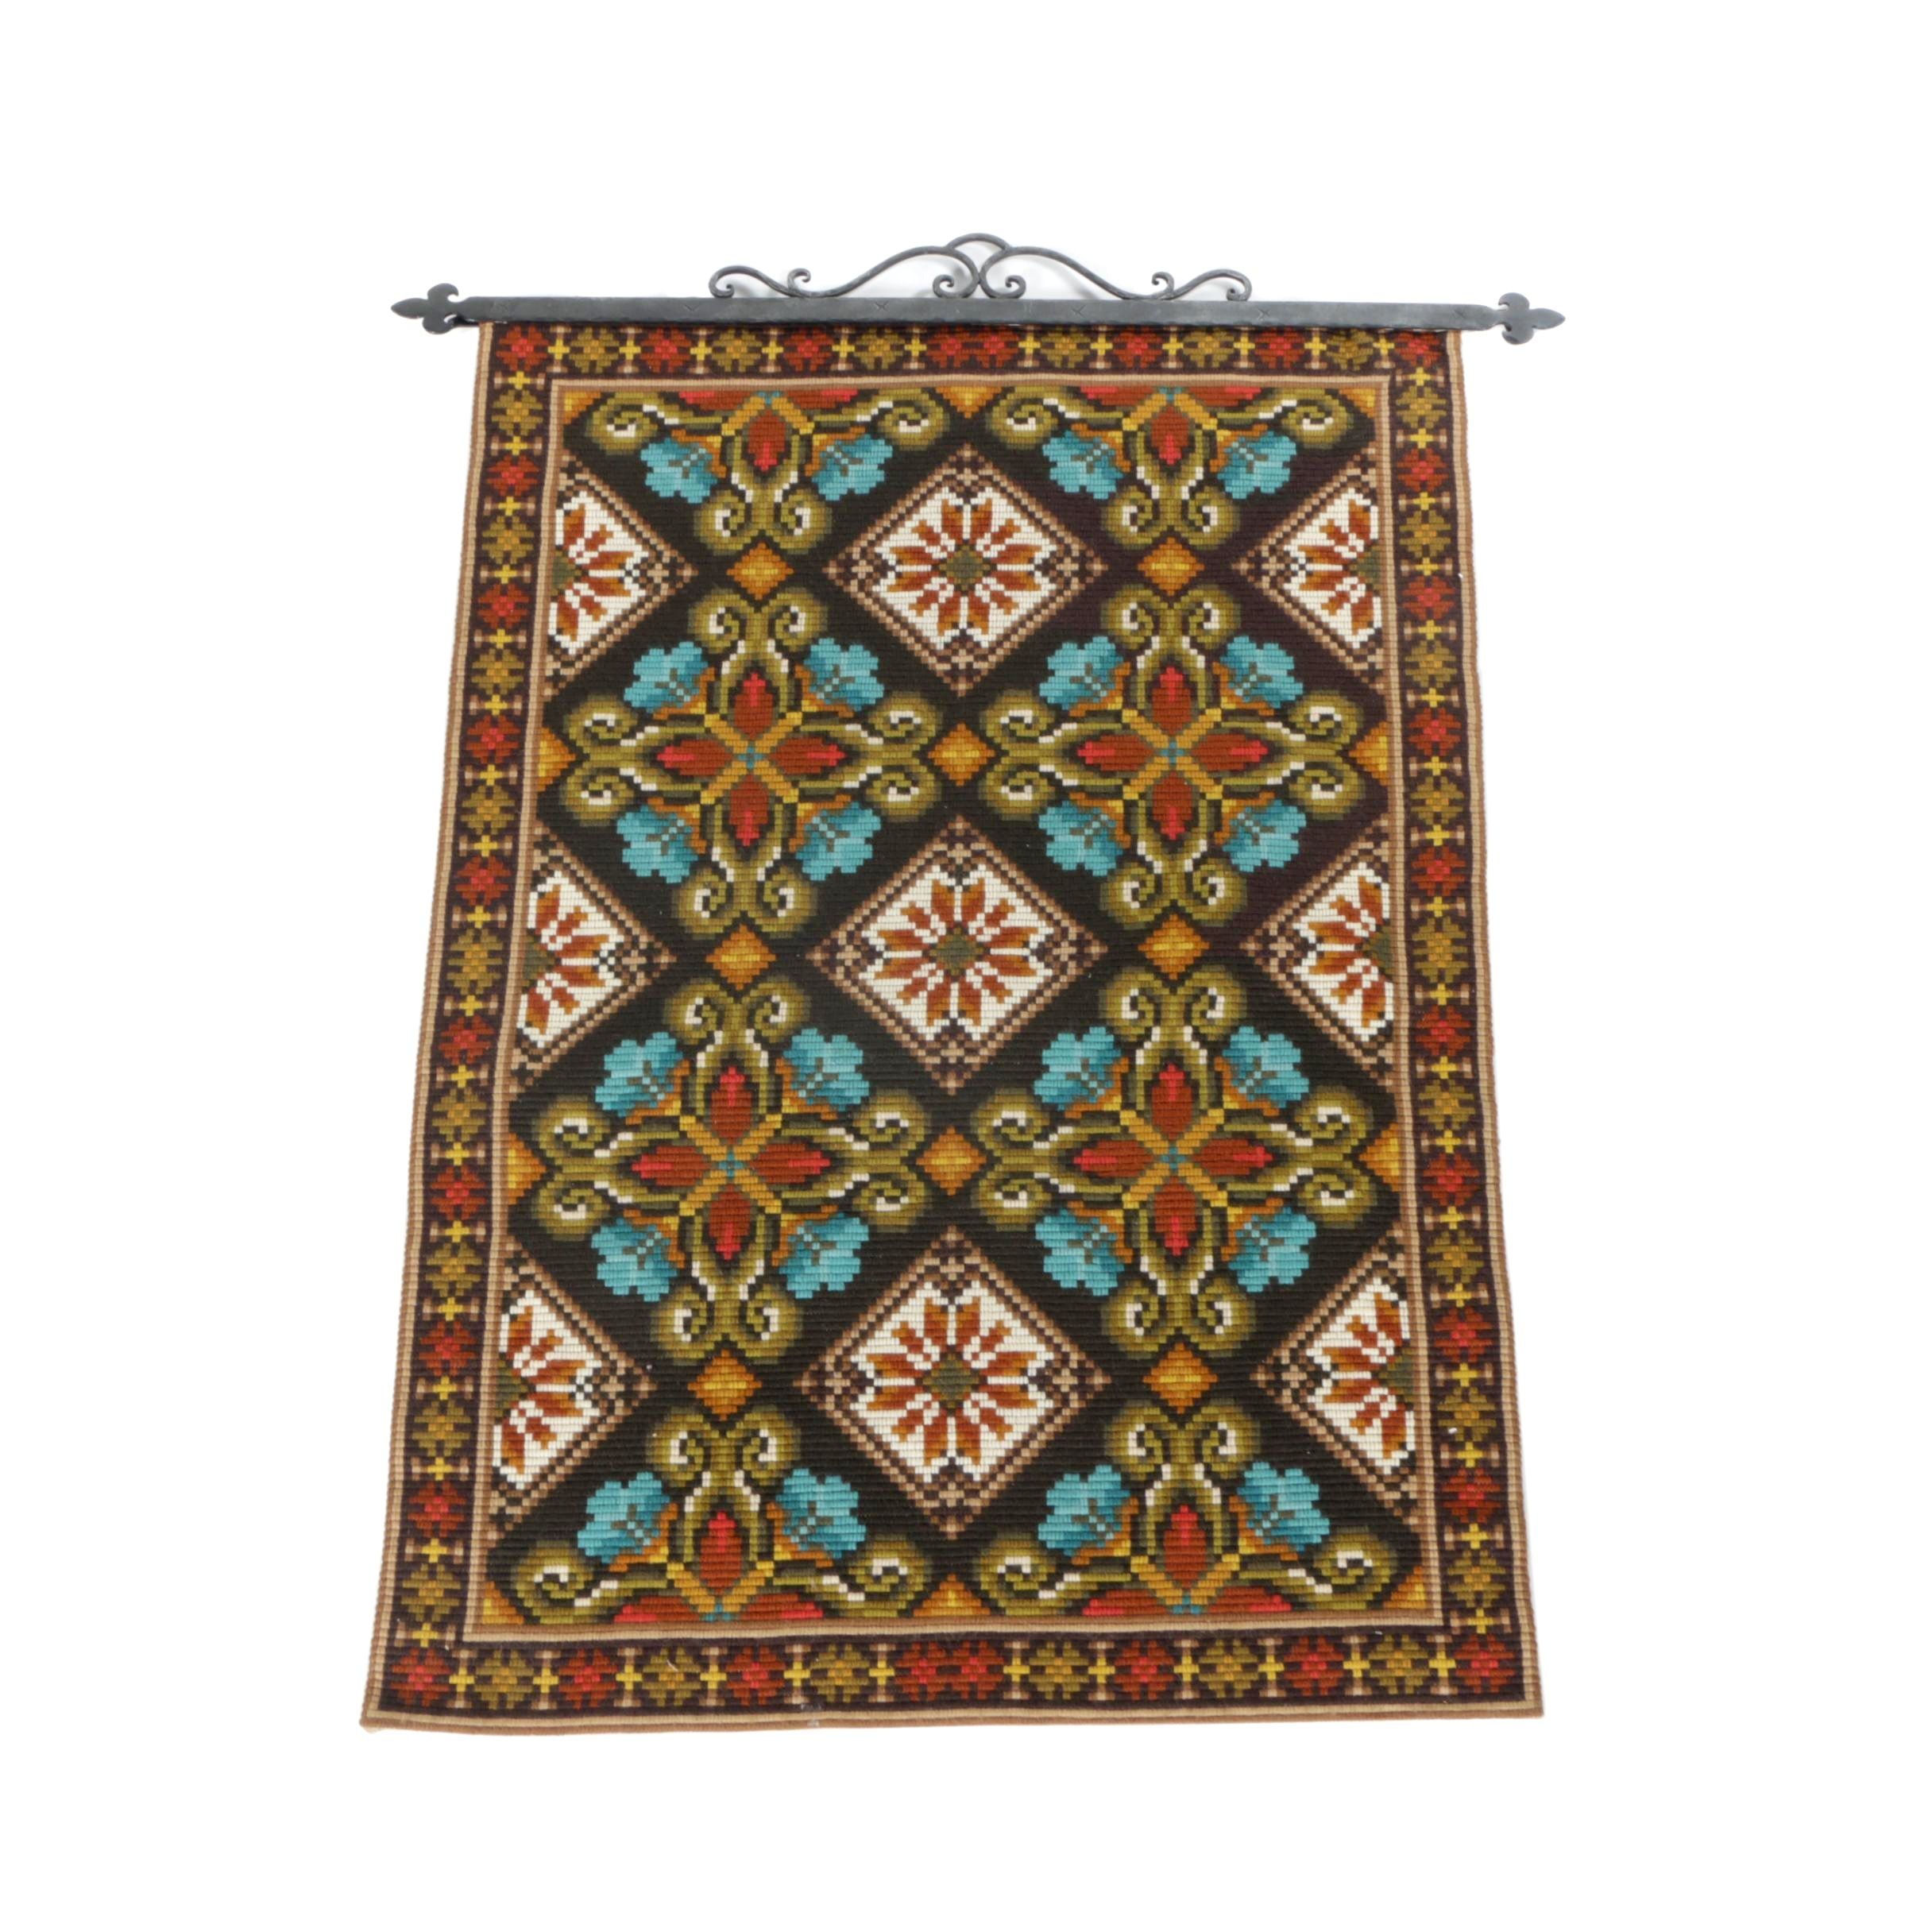 Needlepoint Hanging Tapestry